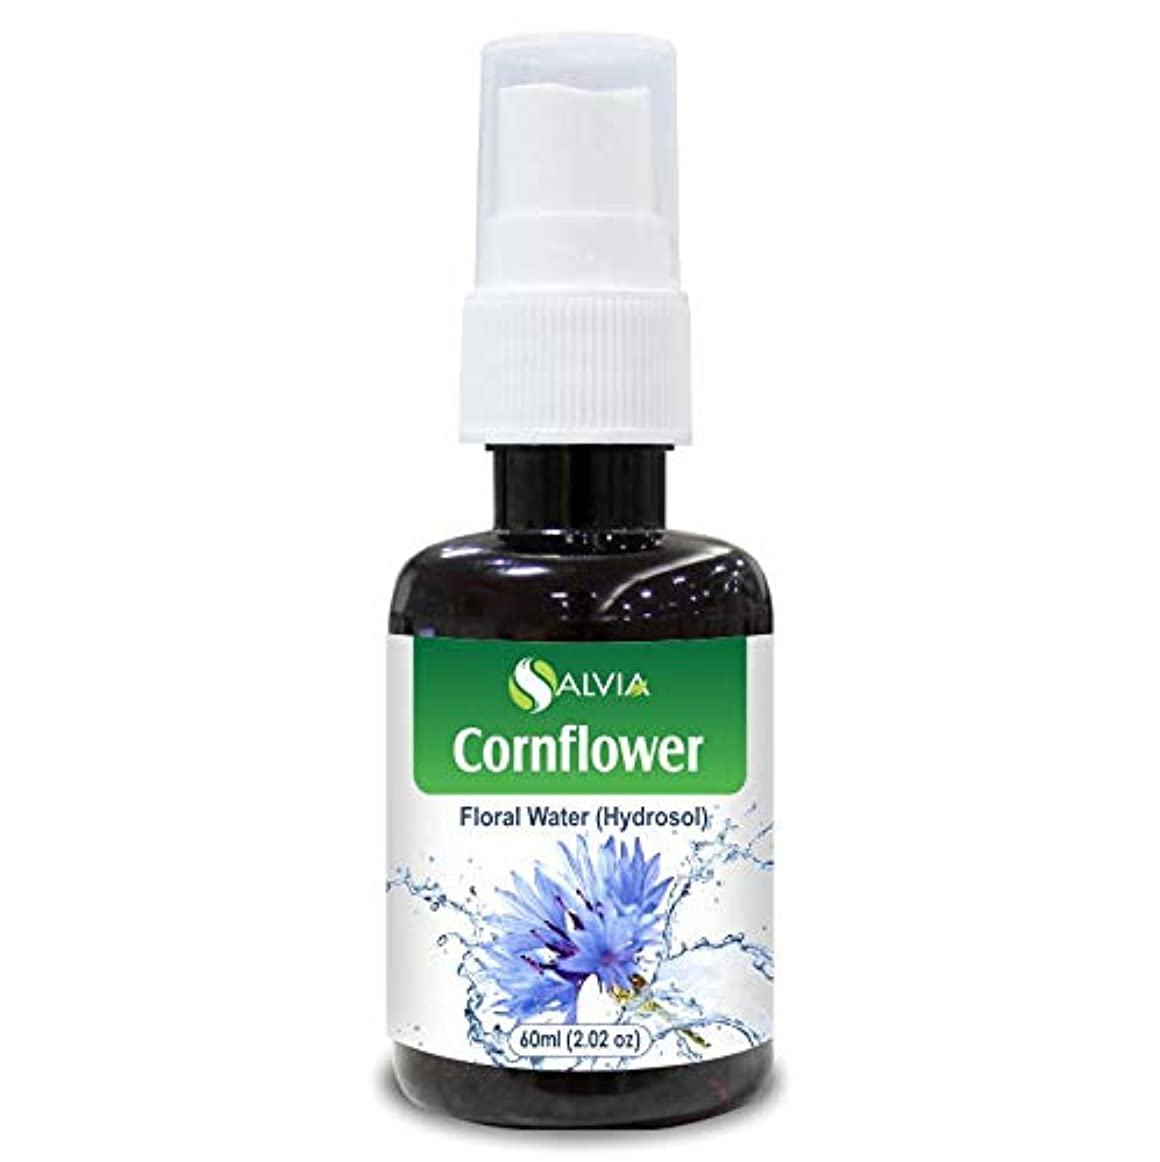 特異な元気な知覚できるCornflower Floral Water 60ml (Hydrosol) 100% Pure And Natural